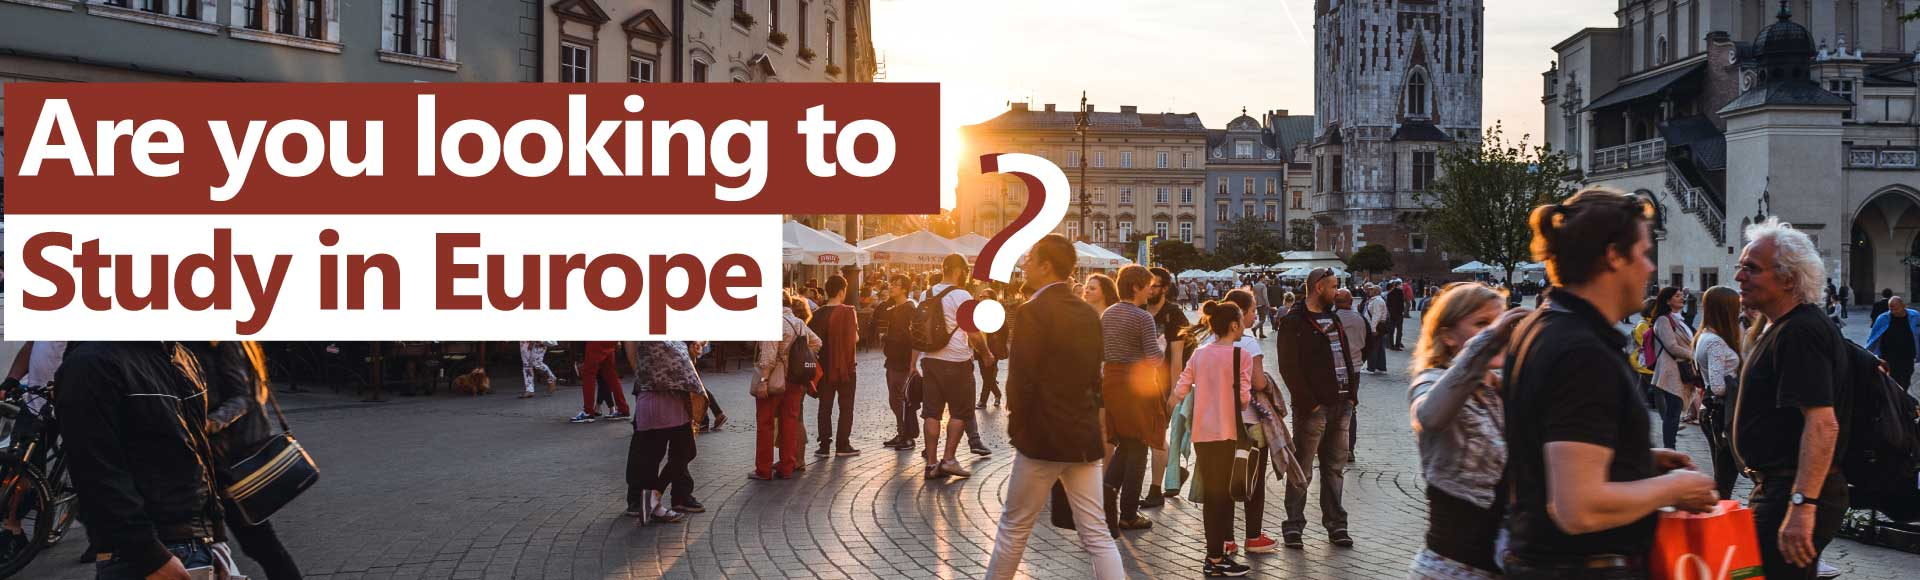 Are you looking to Study in Europe?